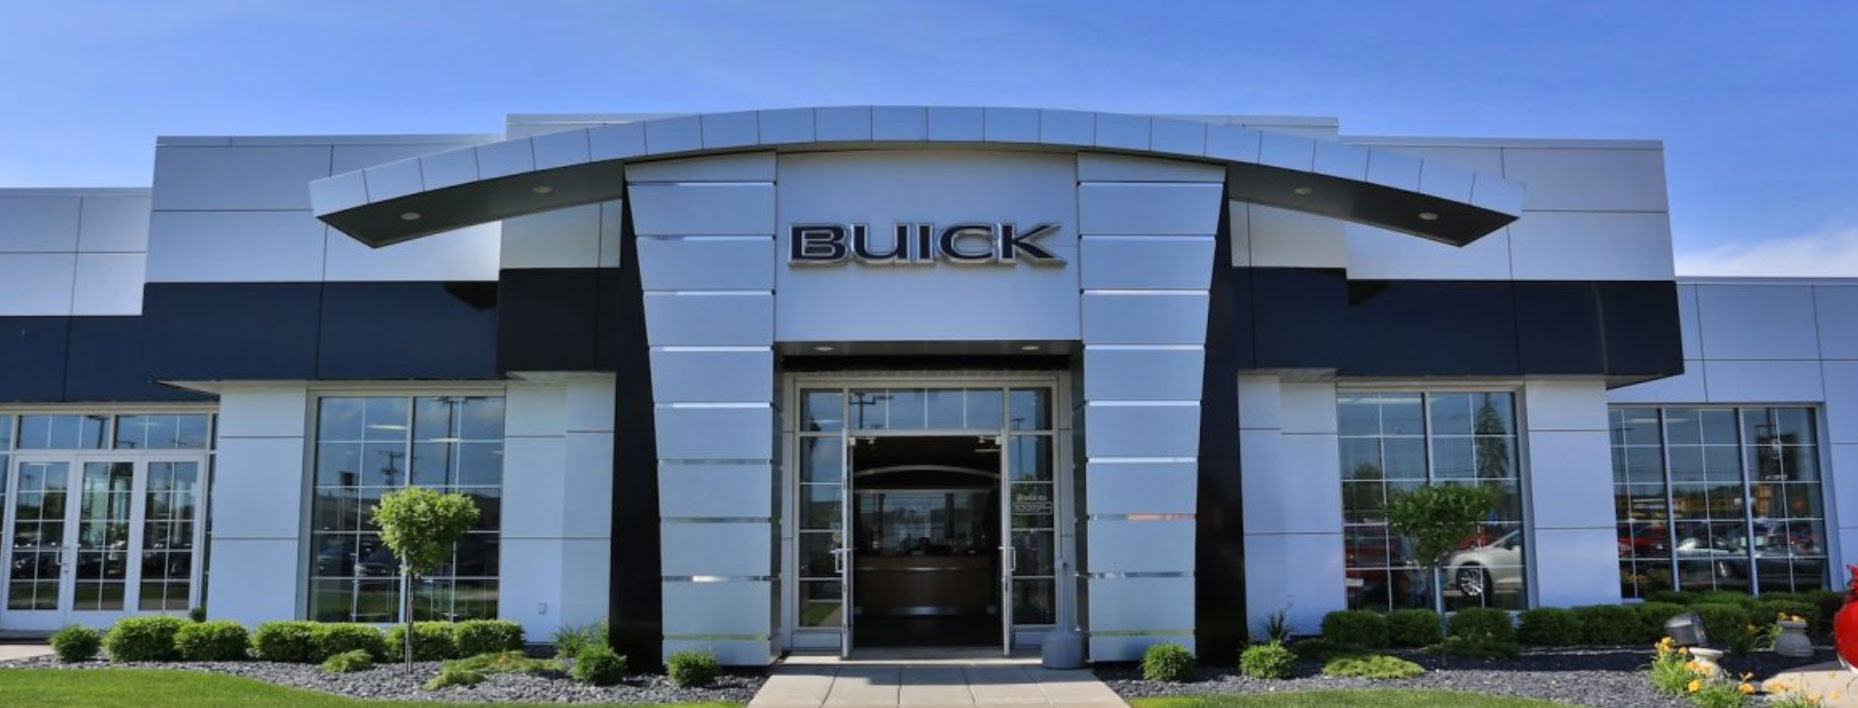 garber-buick-new-and-used-car-dealership-saginaw-mi-1